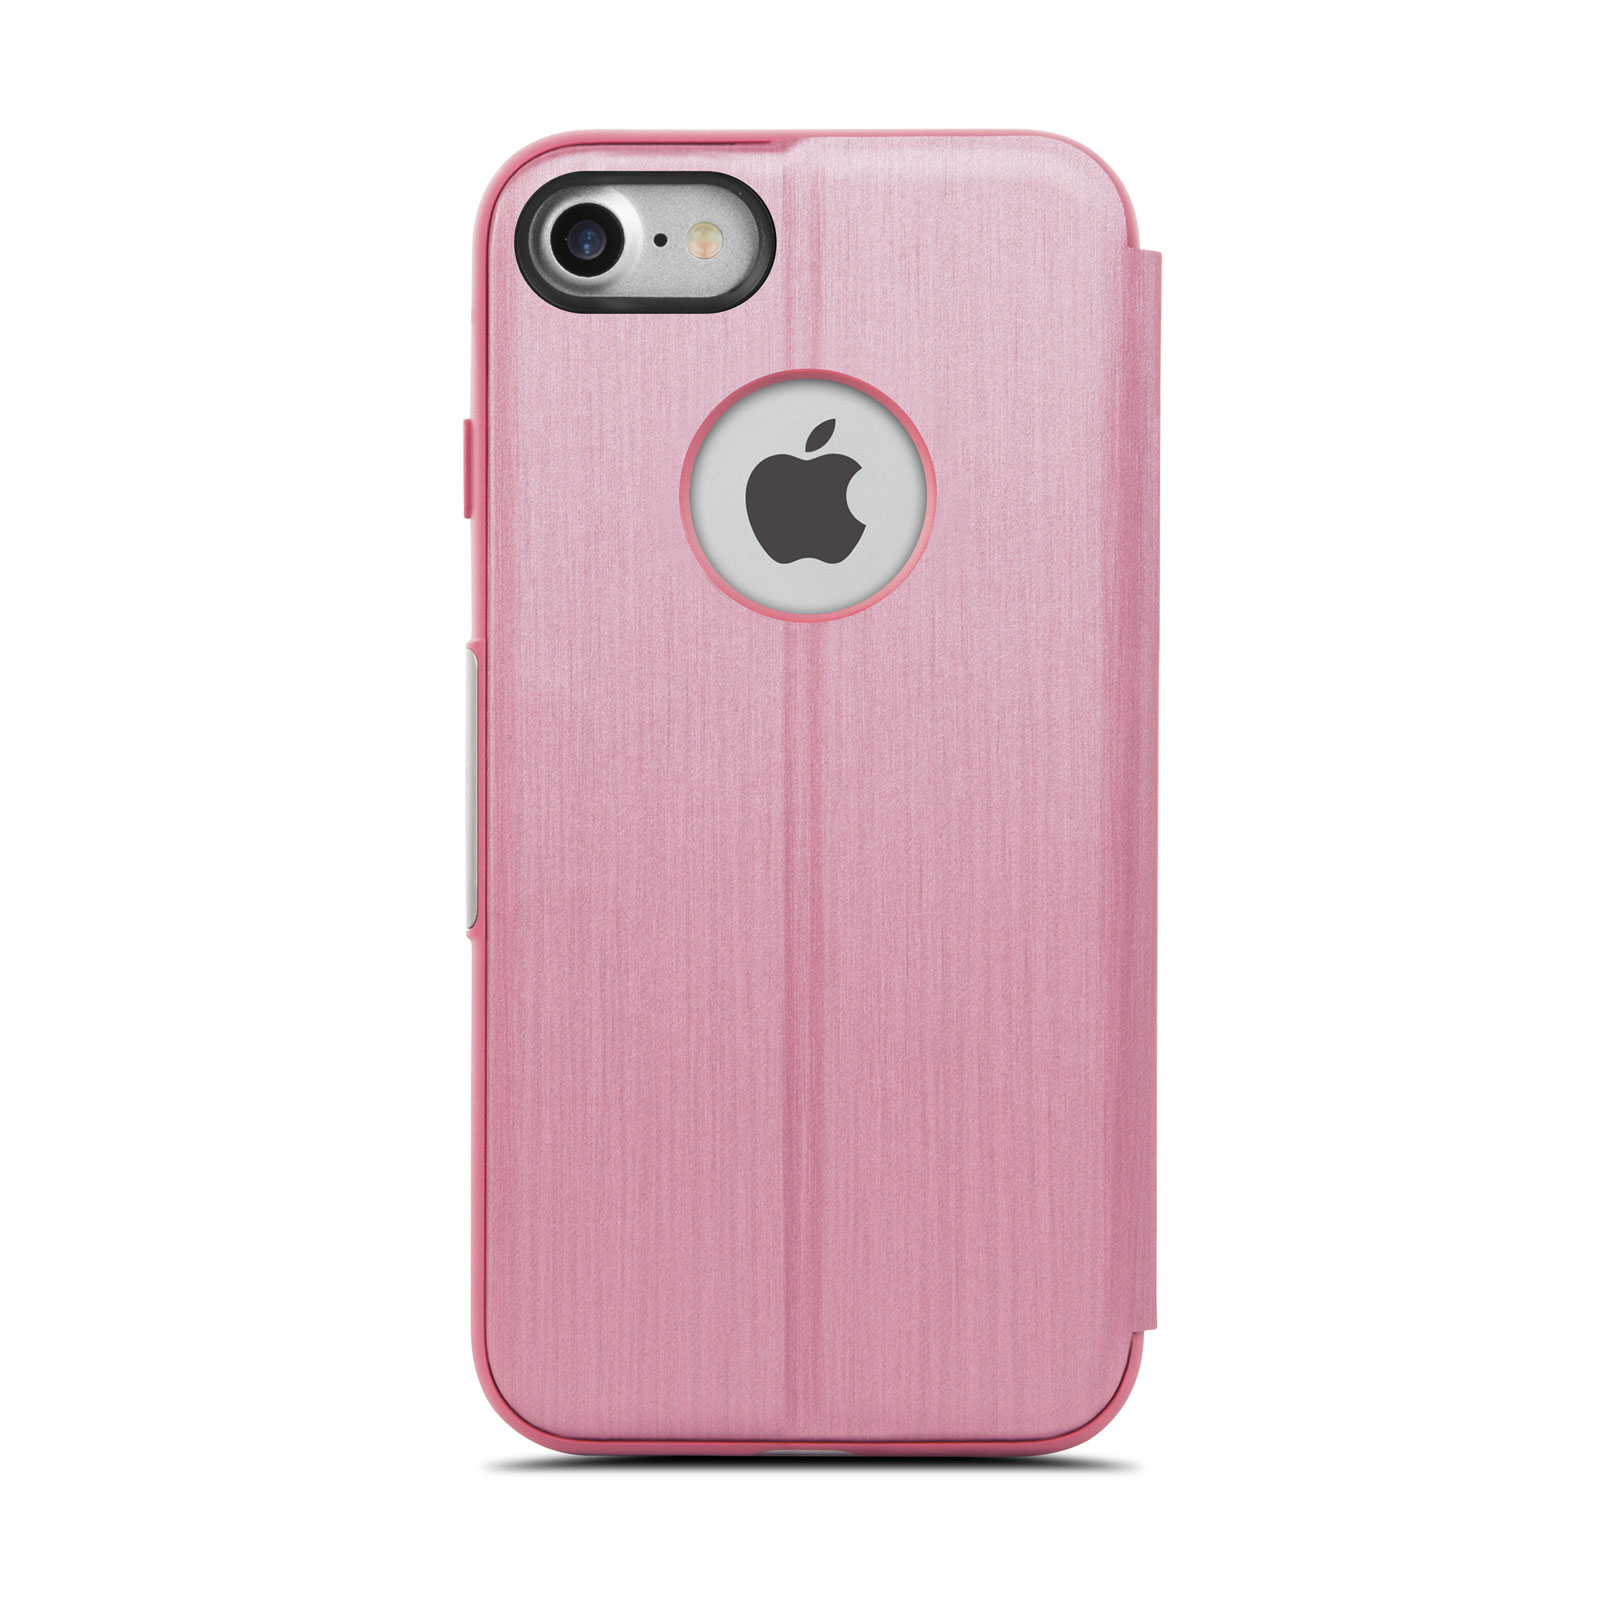 low priced a50ab 7fb8e SenseCover for iPhone 8/7